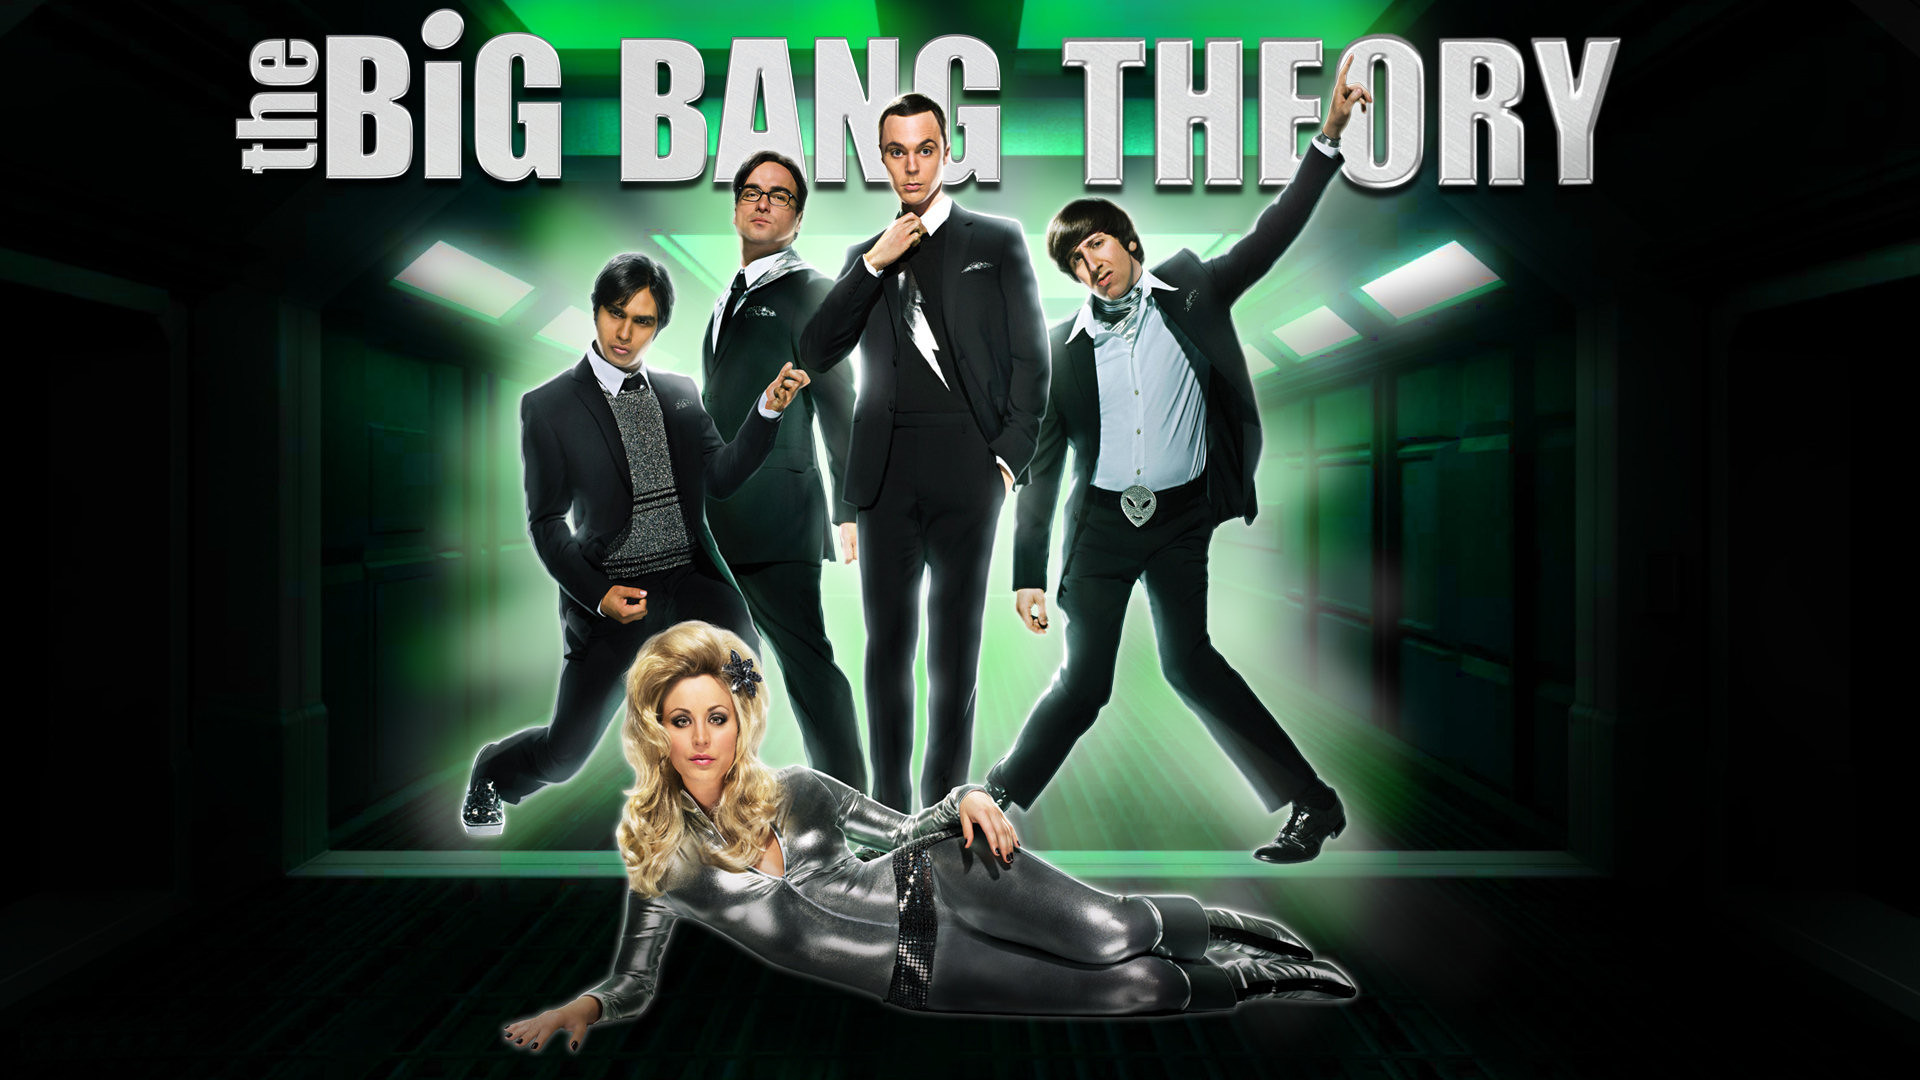 Fantastic Wallpaper Movie The Theory Everything - 281895  Trends_997267.jpg